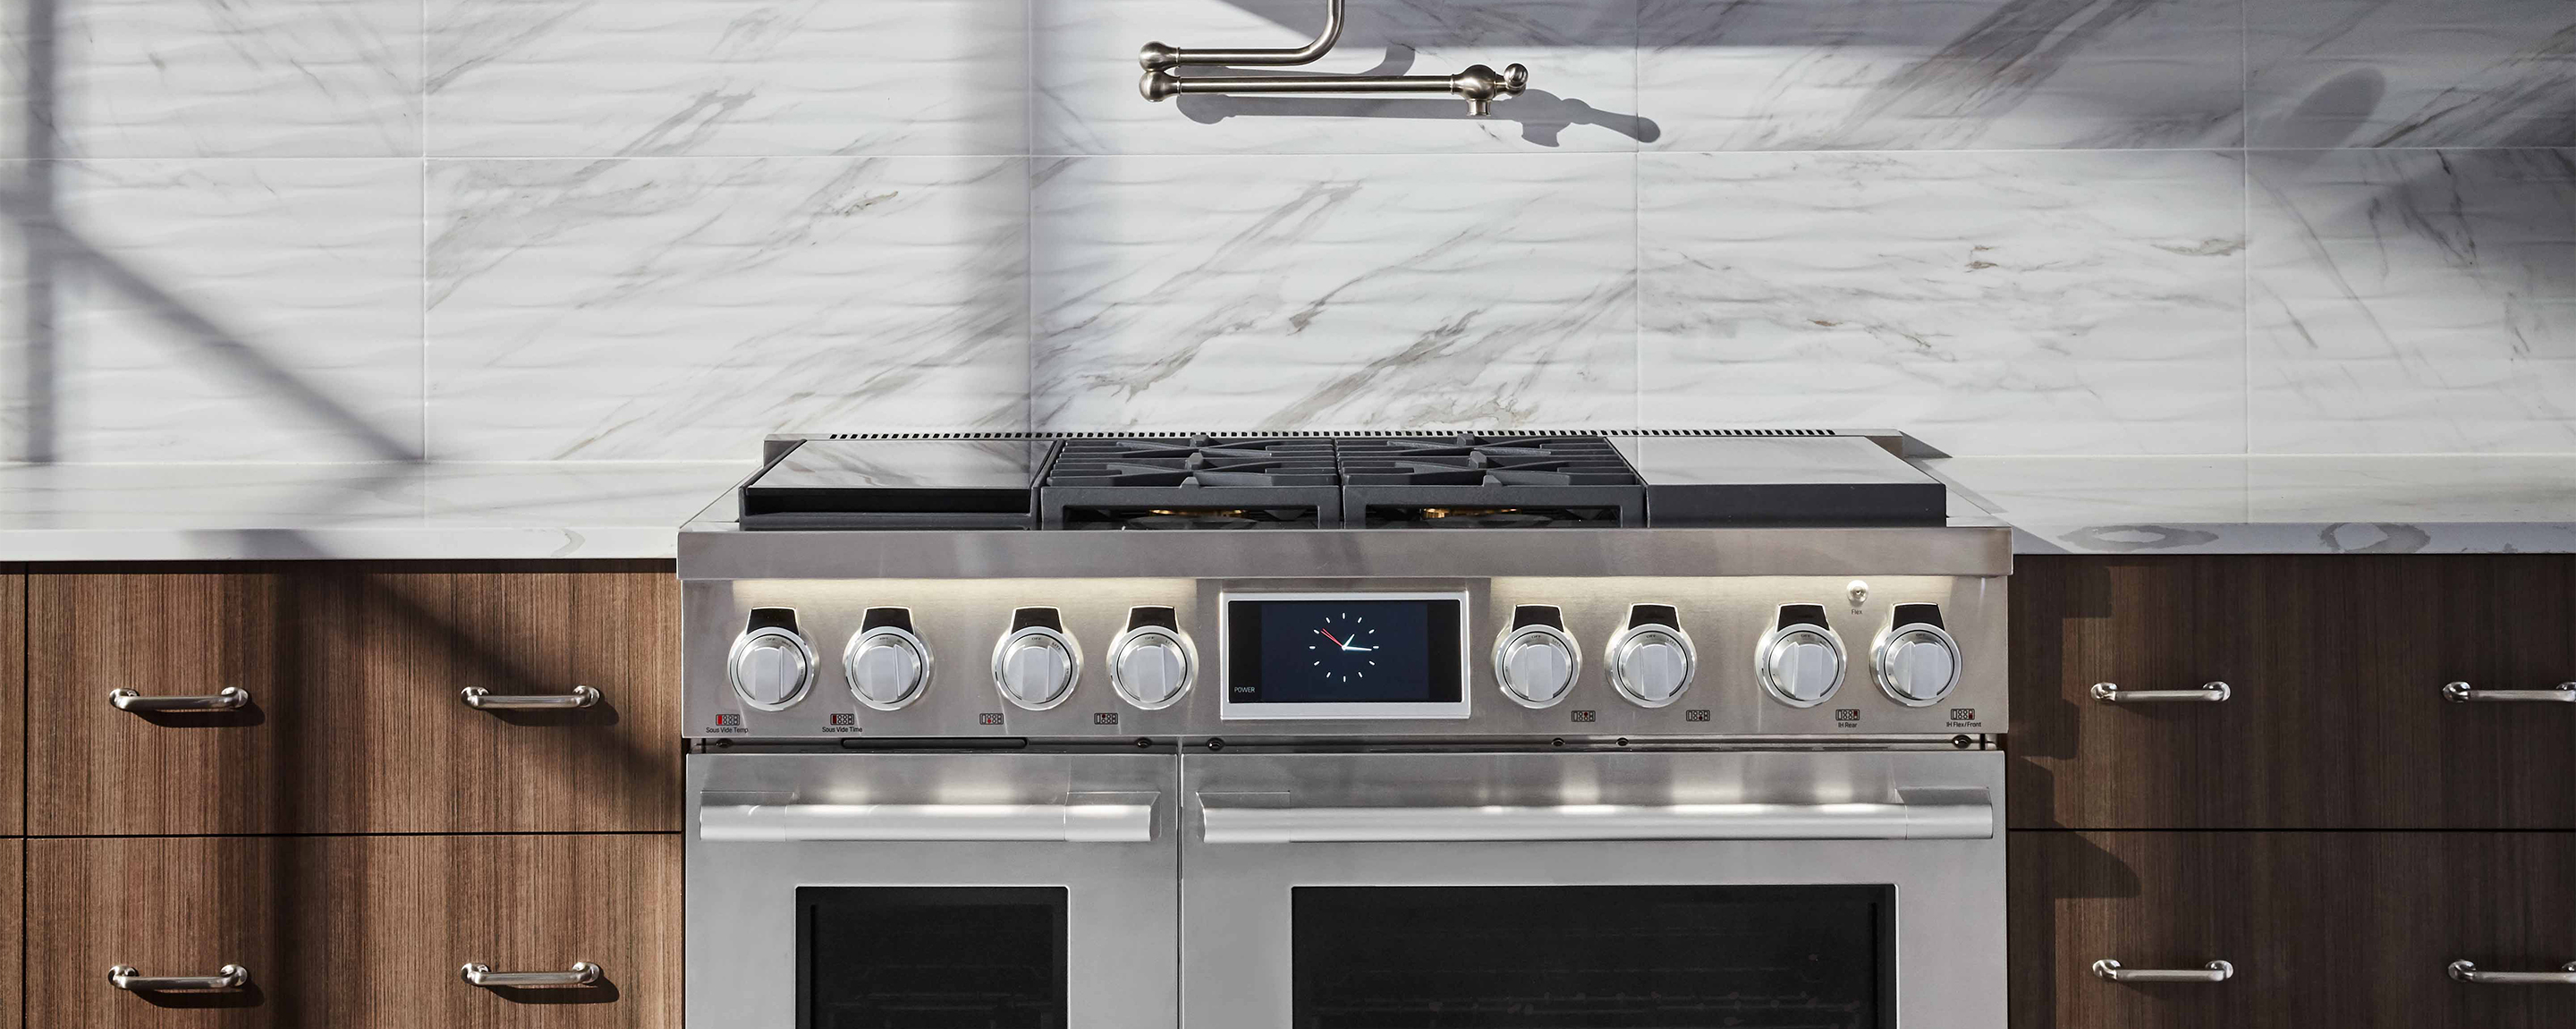 "48"" Pro Range: Sous Vide, Griddle, Gas & Induction 